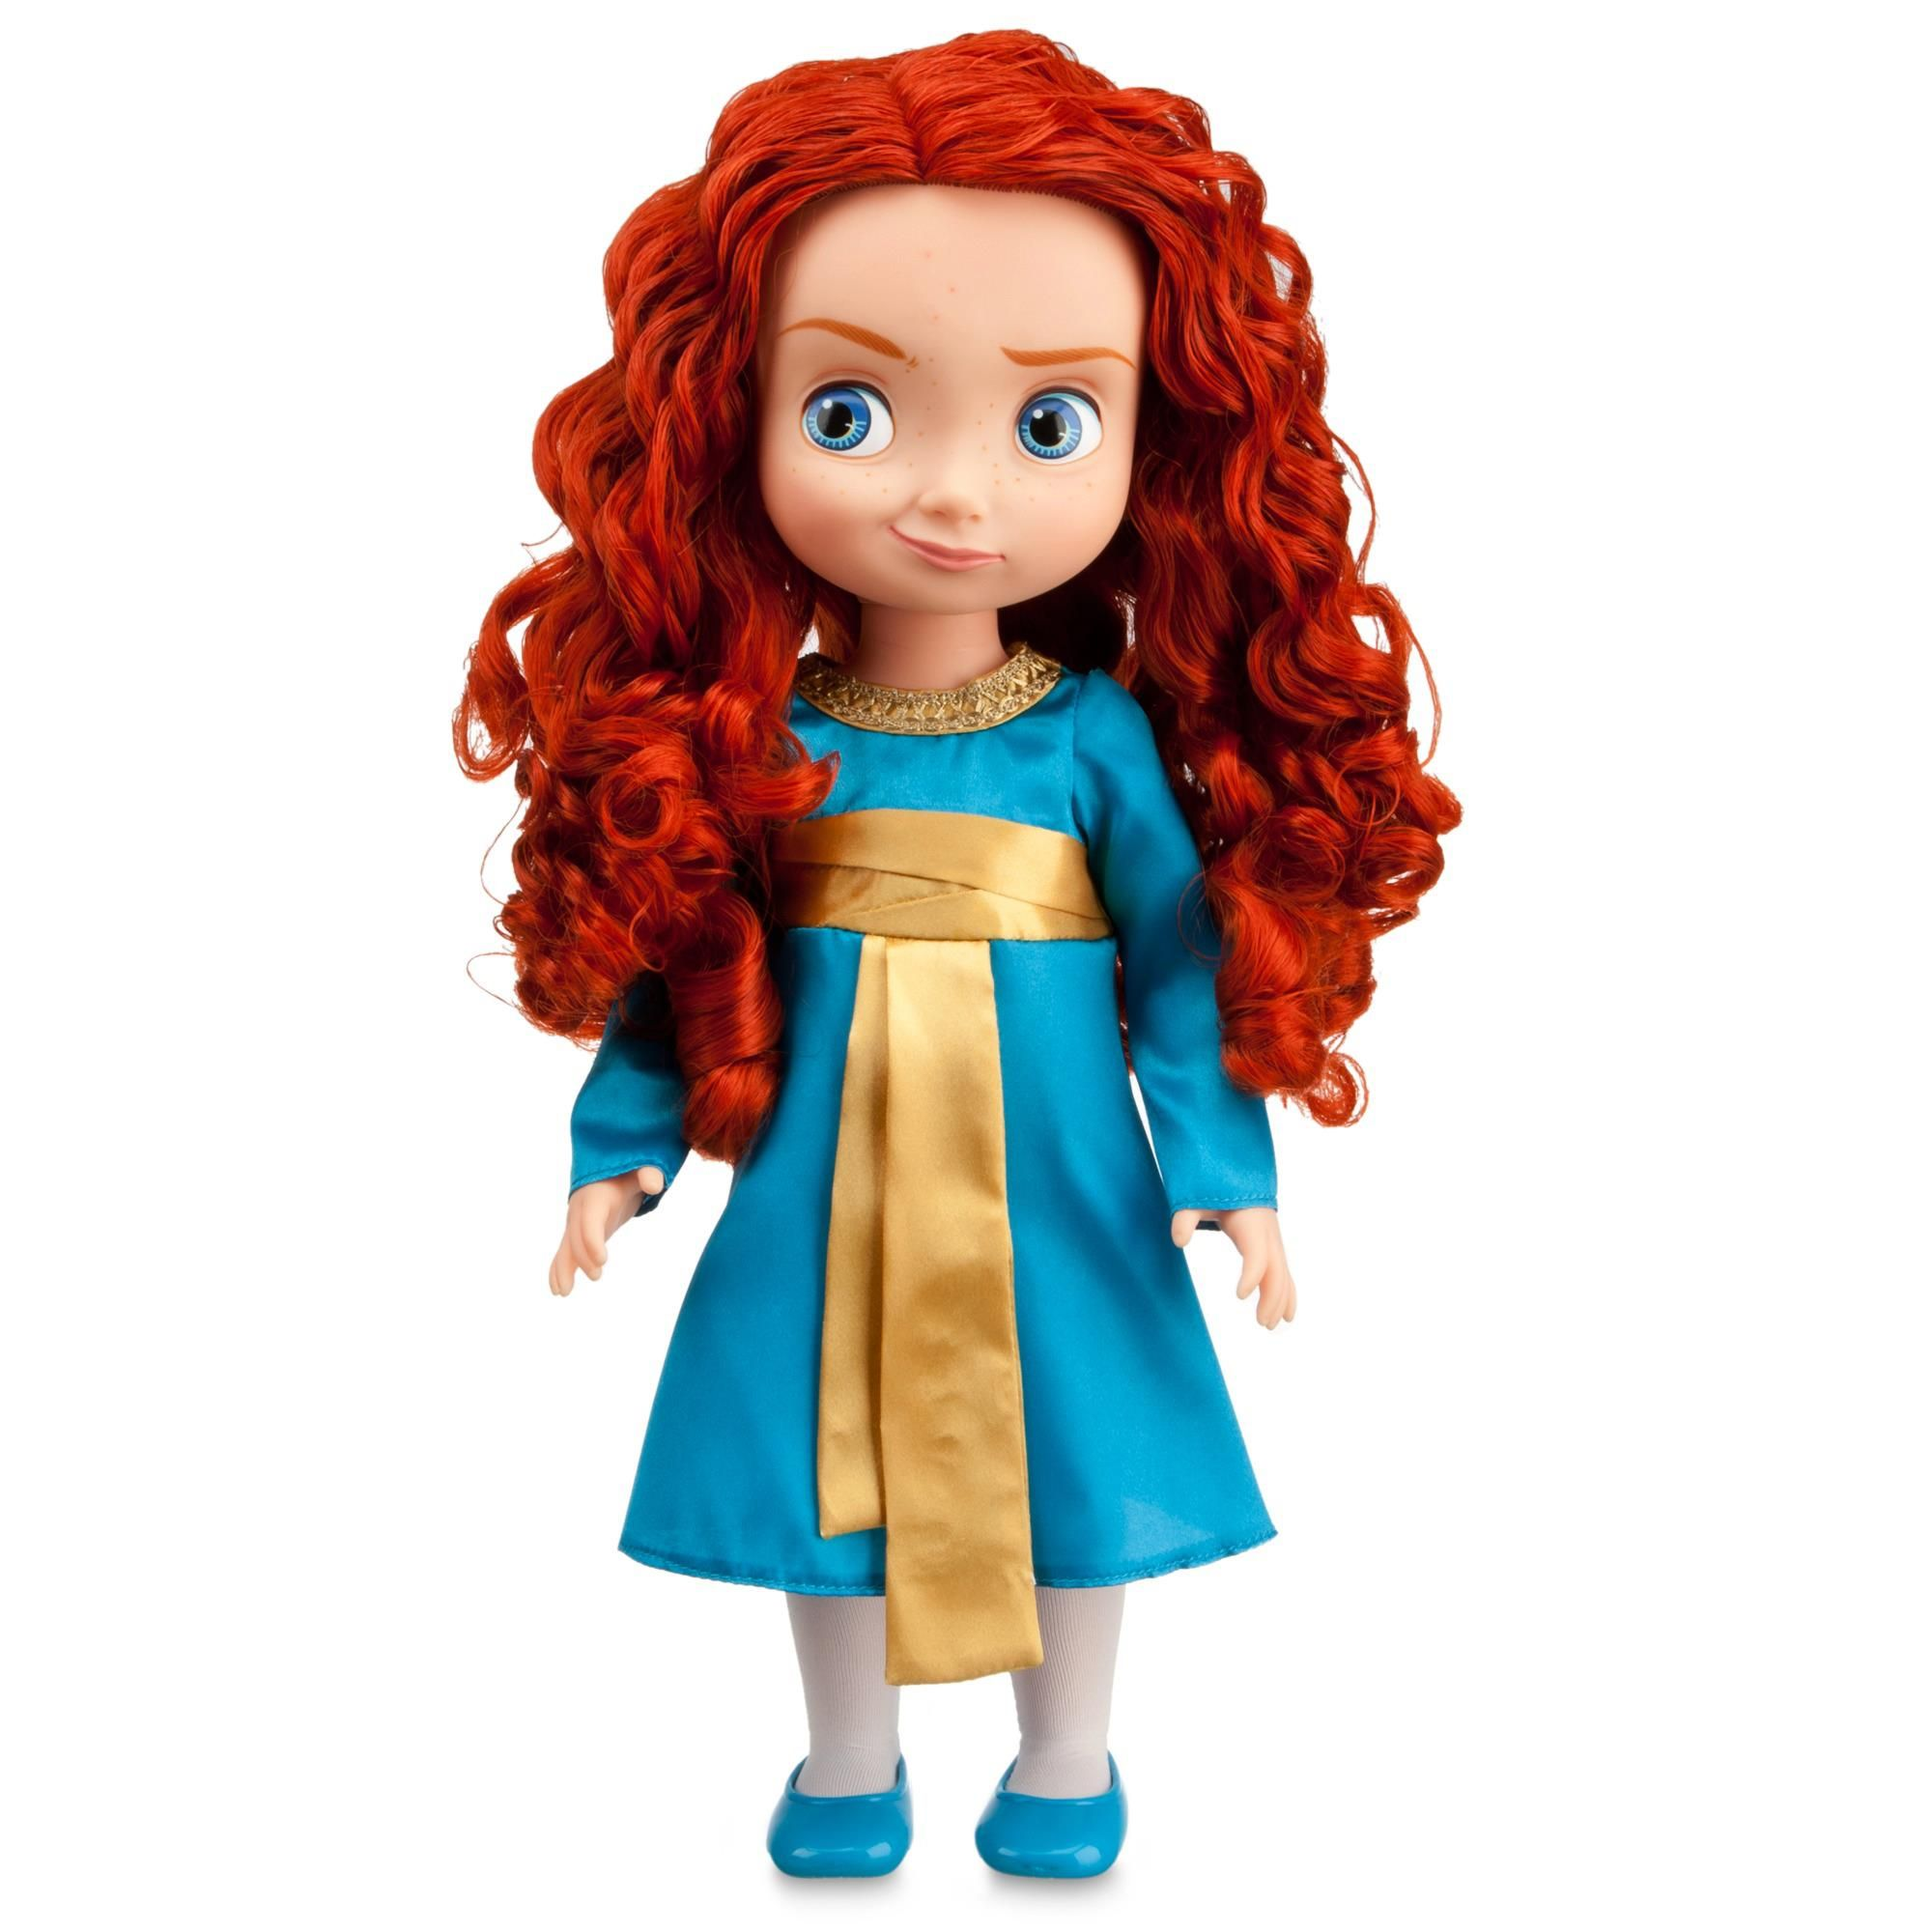 Brave movie merida dolls  | Tumblr user PrettySeed posted a close-up of the doll in its packaging ...